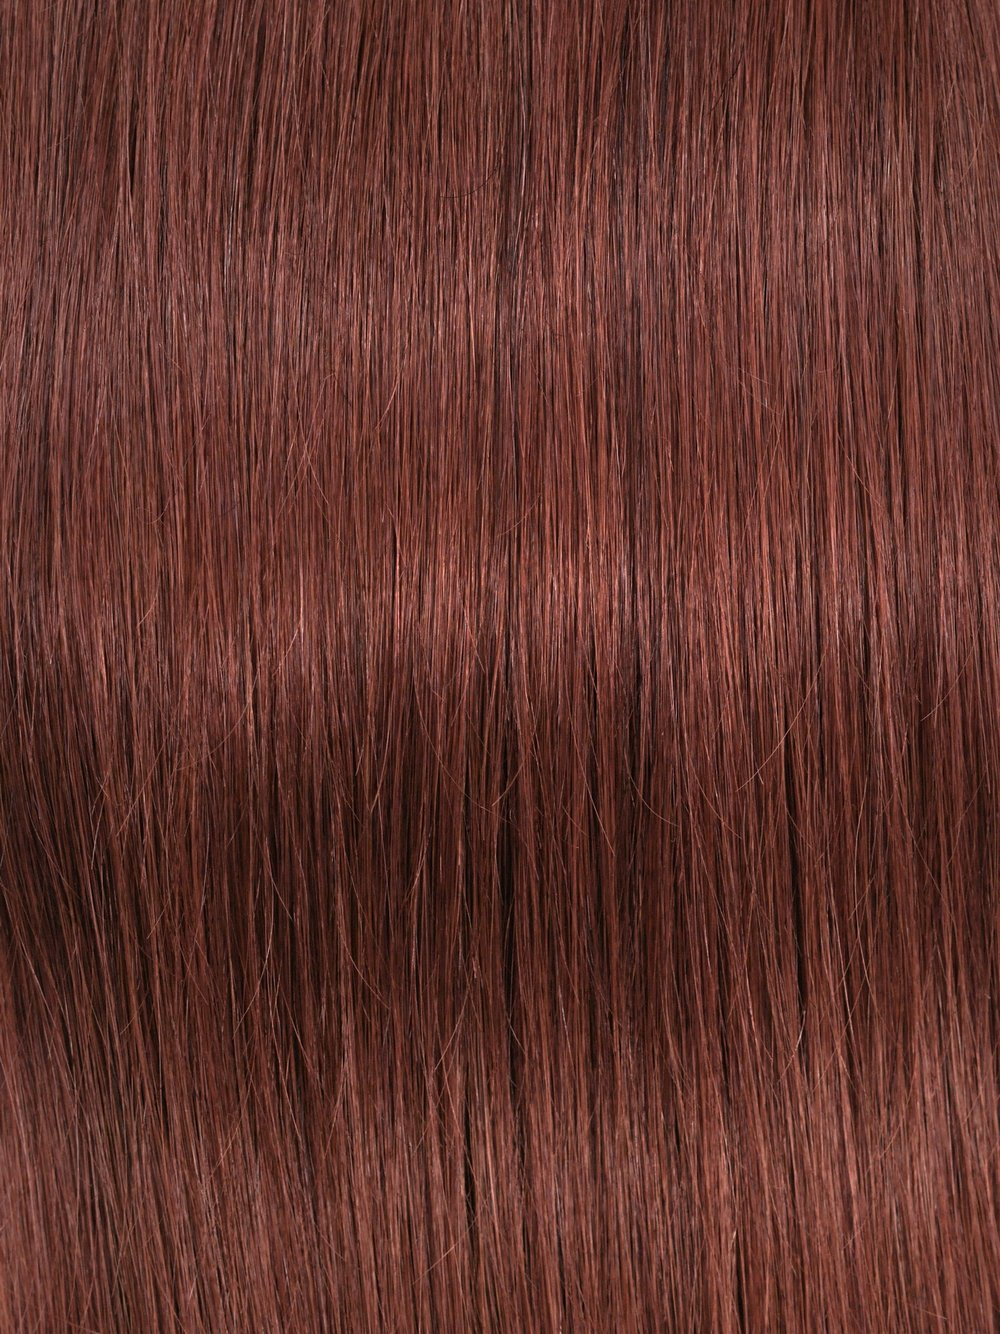 DEEP AUBURN #33D - The warmth of our deep red shade shines beautifully in direct sunlight and appears darker indoors giving it a versatile depth that works day or night!